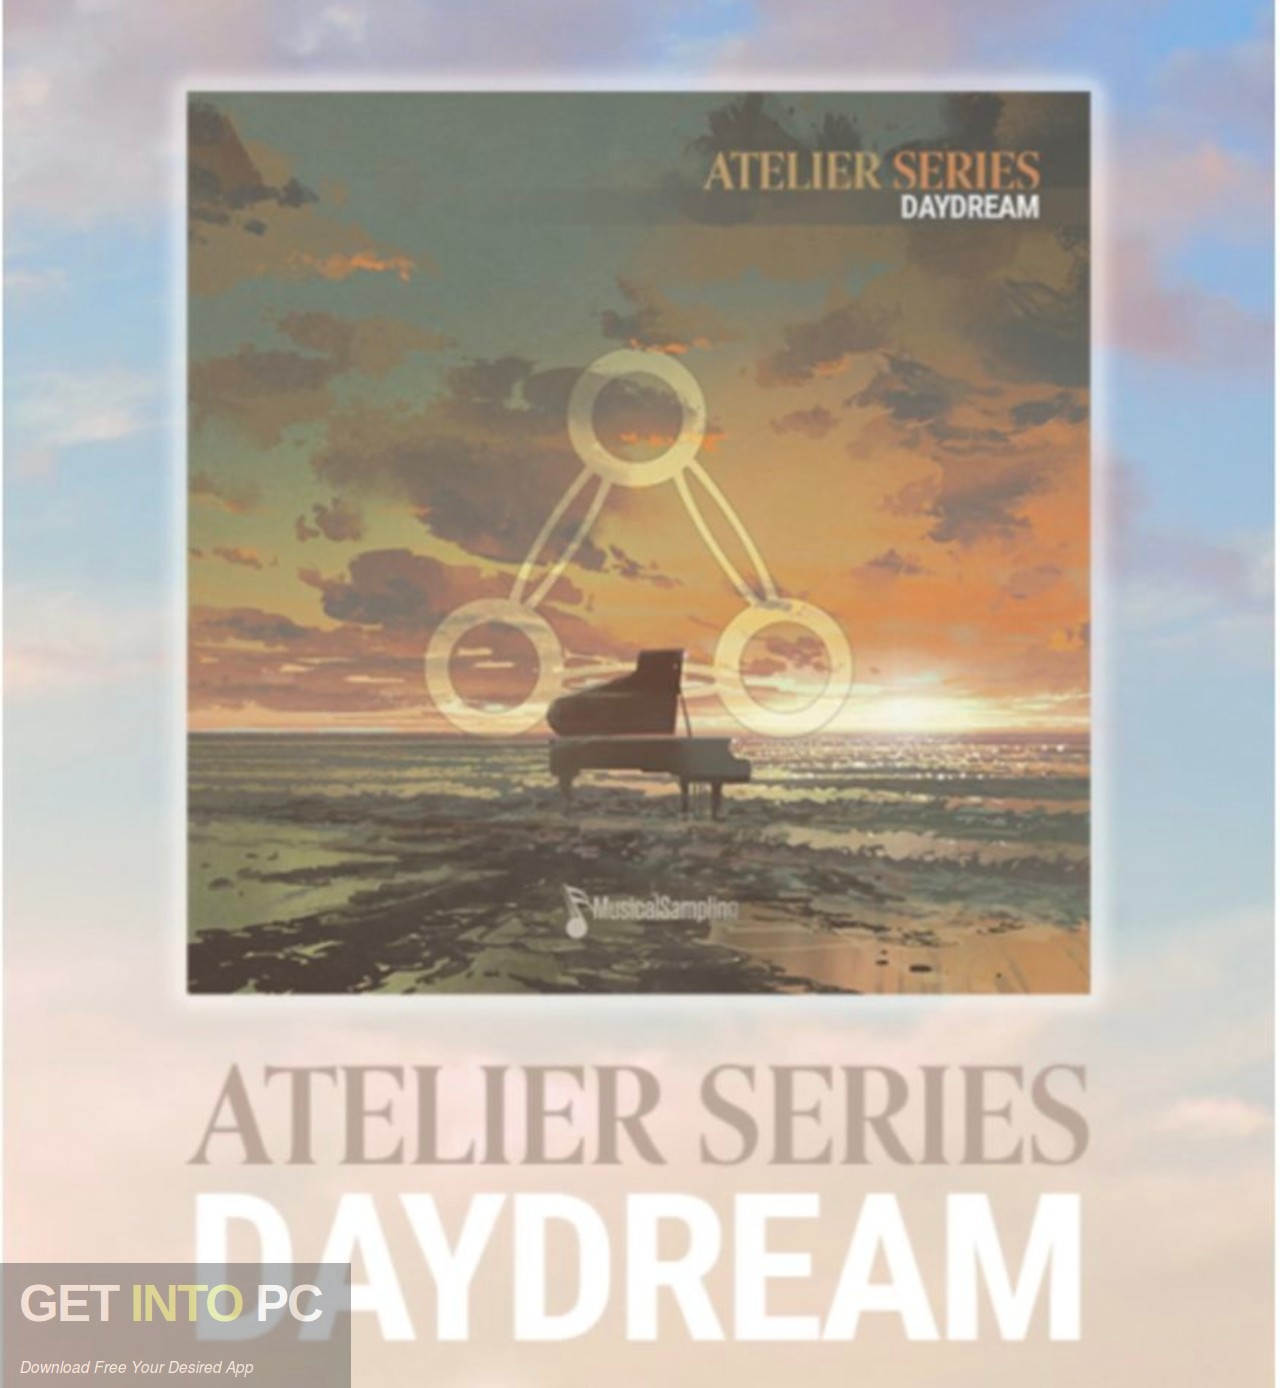 Musical Sampling - Atelier Series Daydream Direct Link Download